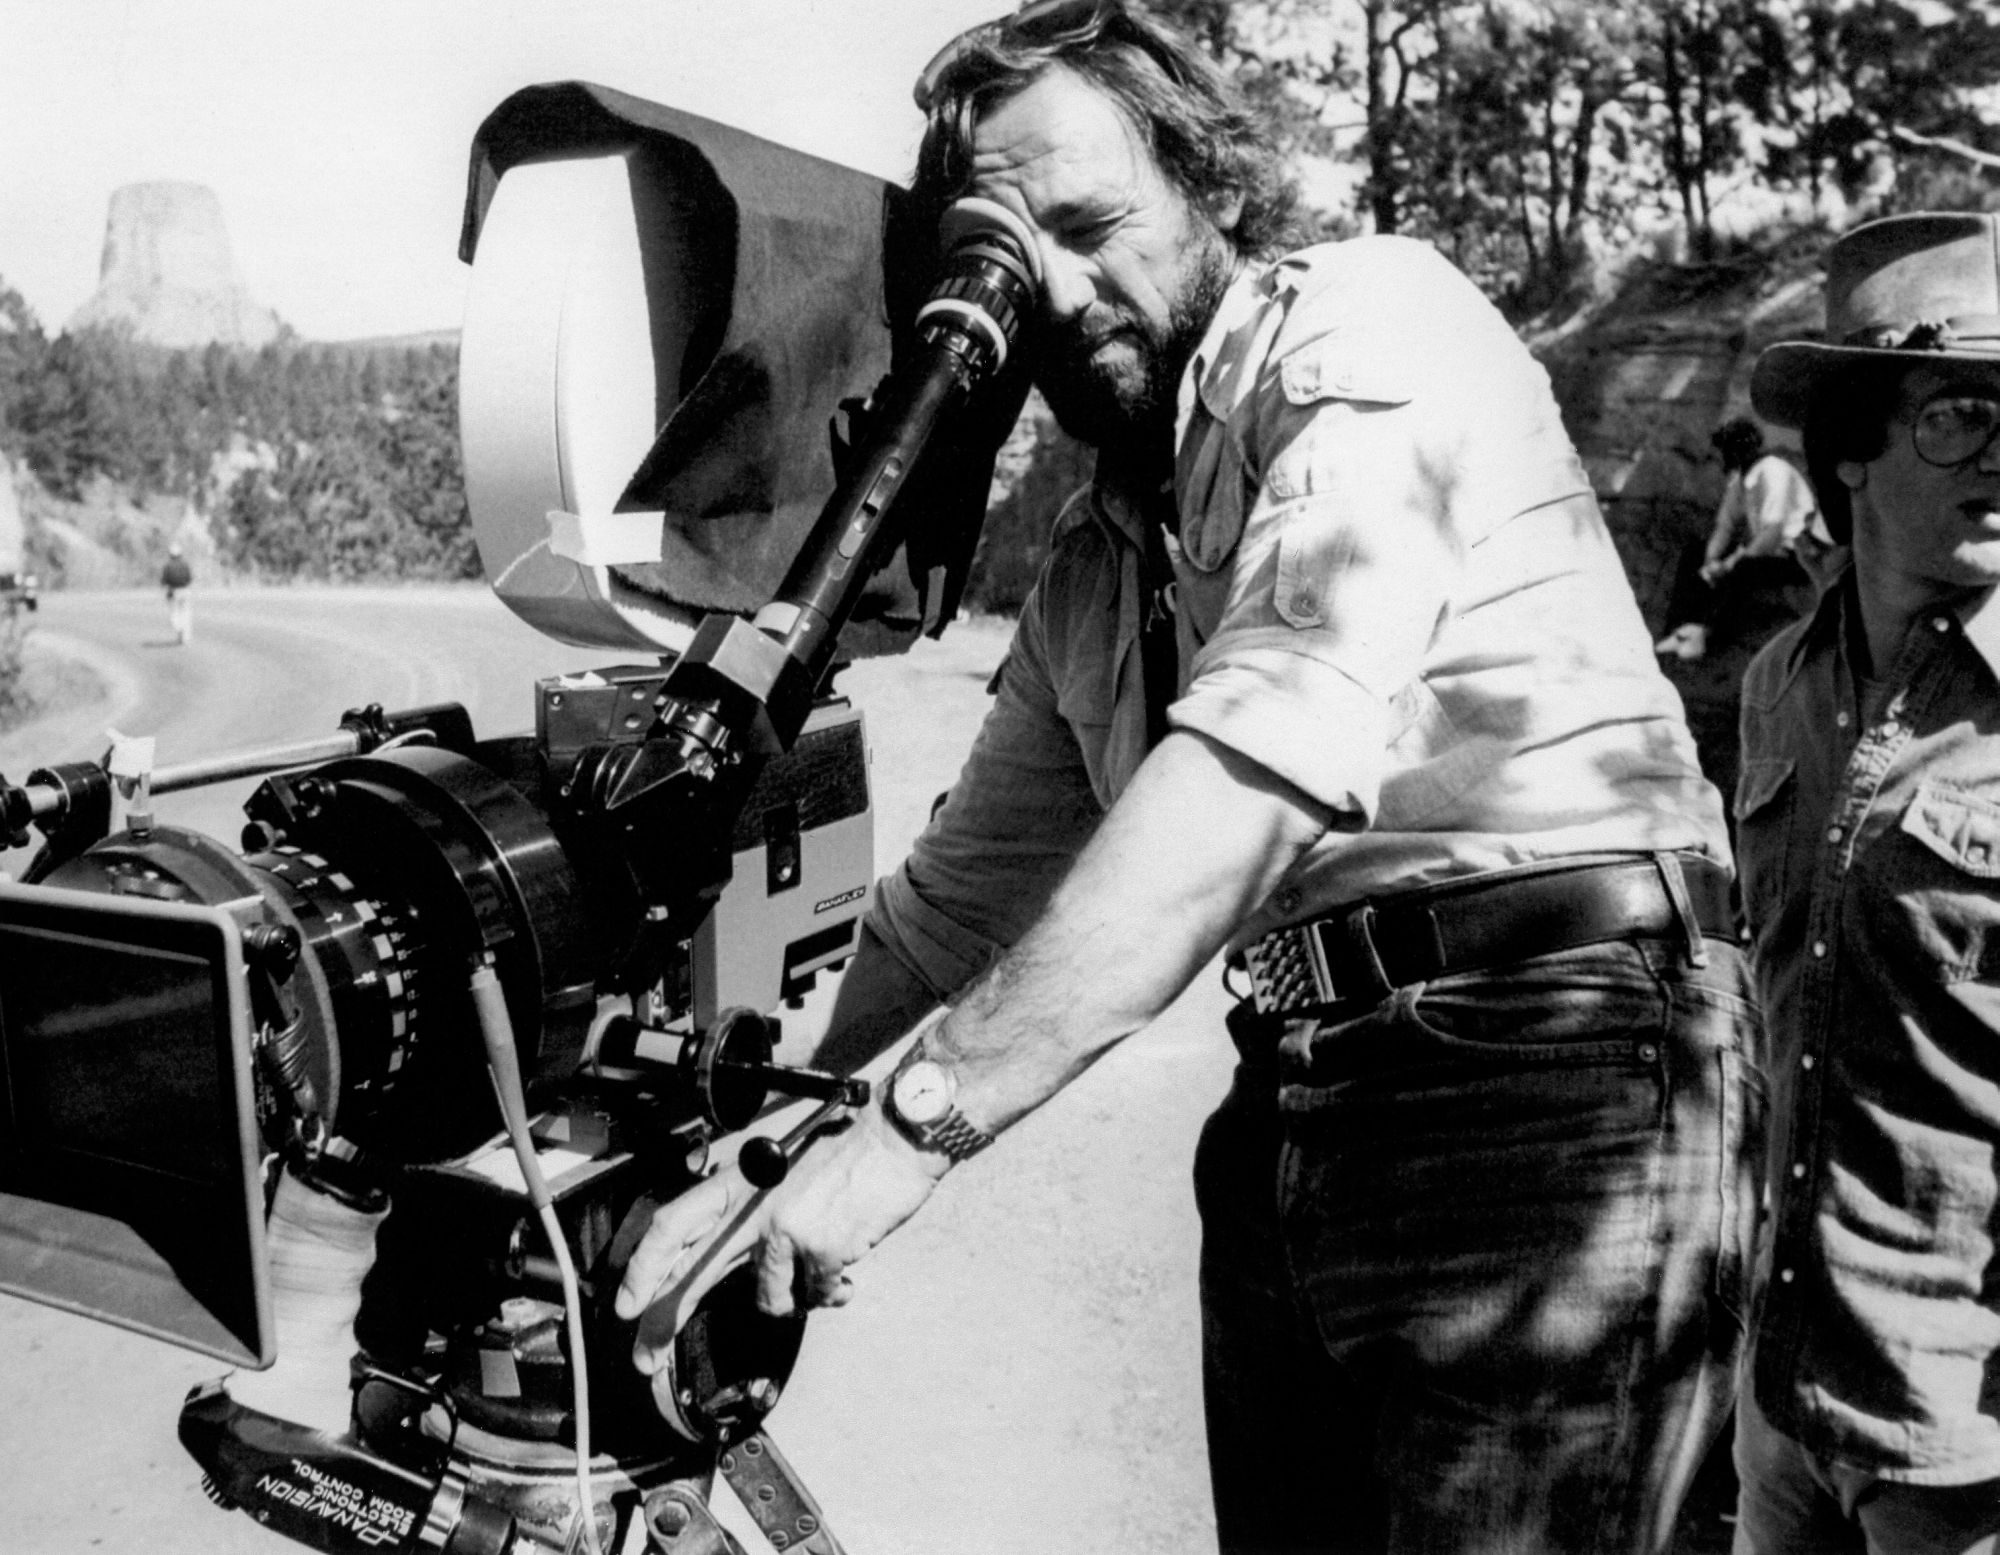 15_04_10_005_zsigmond_vilmos_close_encounters_of_the_third_kind_w_steven_spielberg_1977.jpg